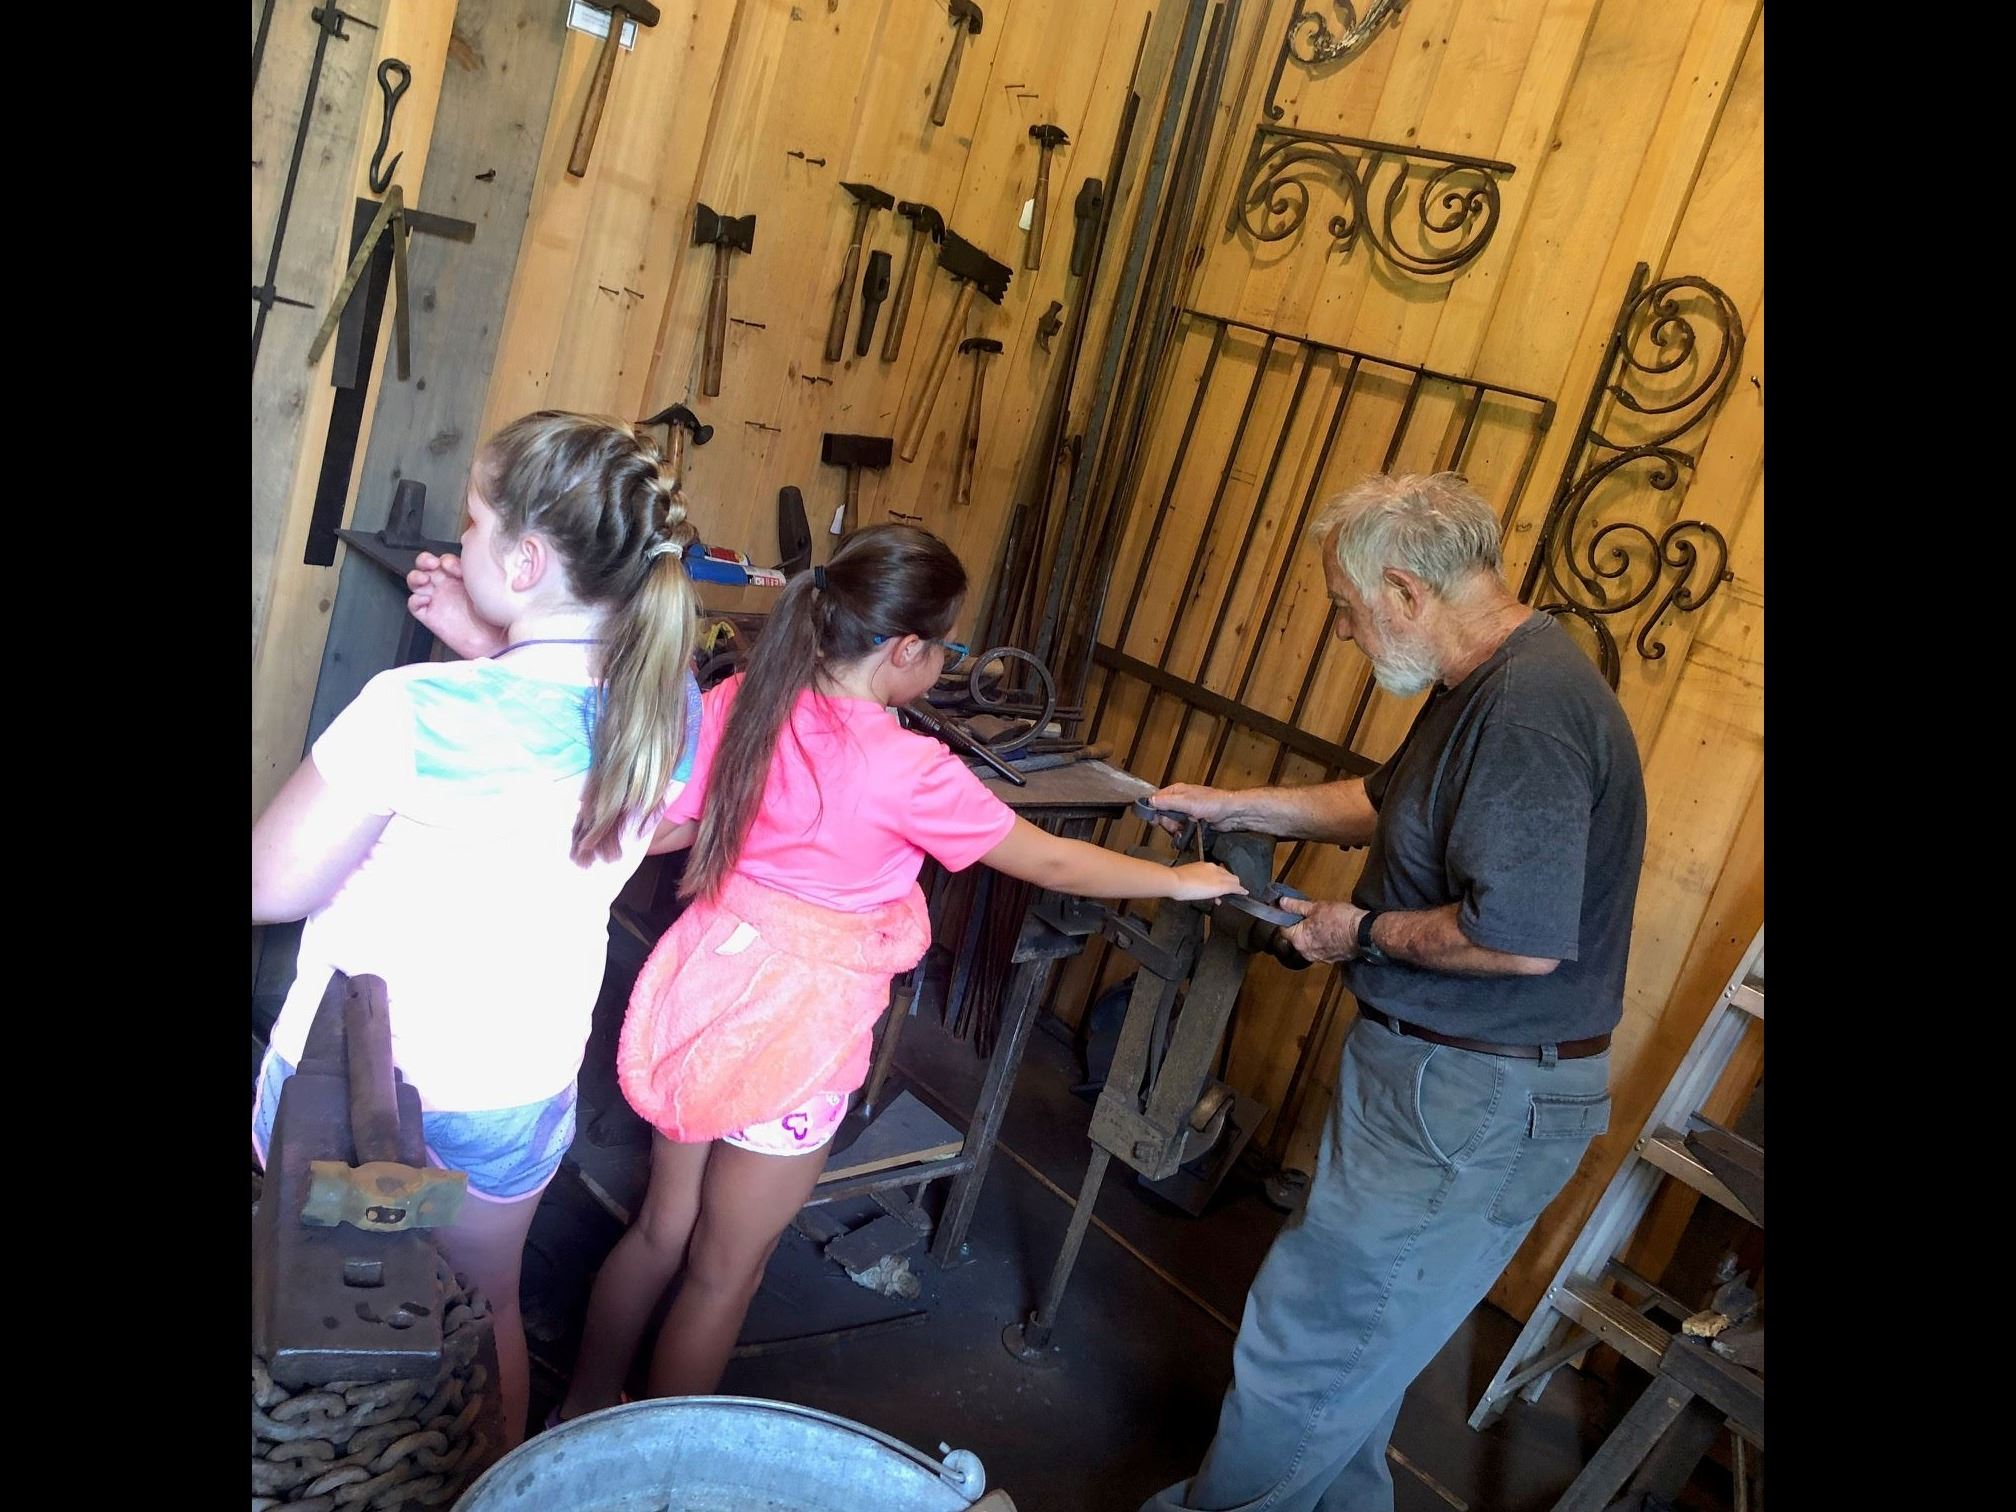 Children observing Blacksmith